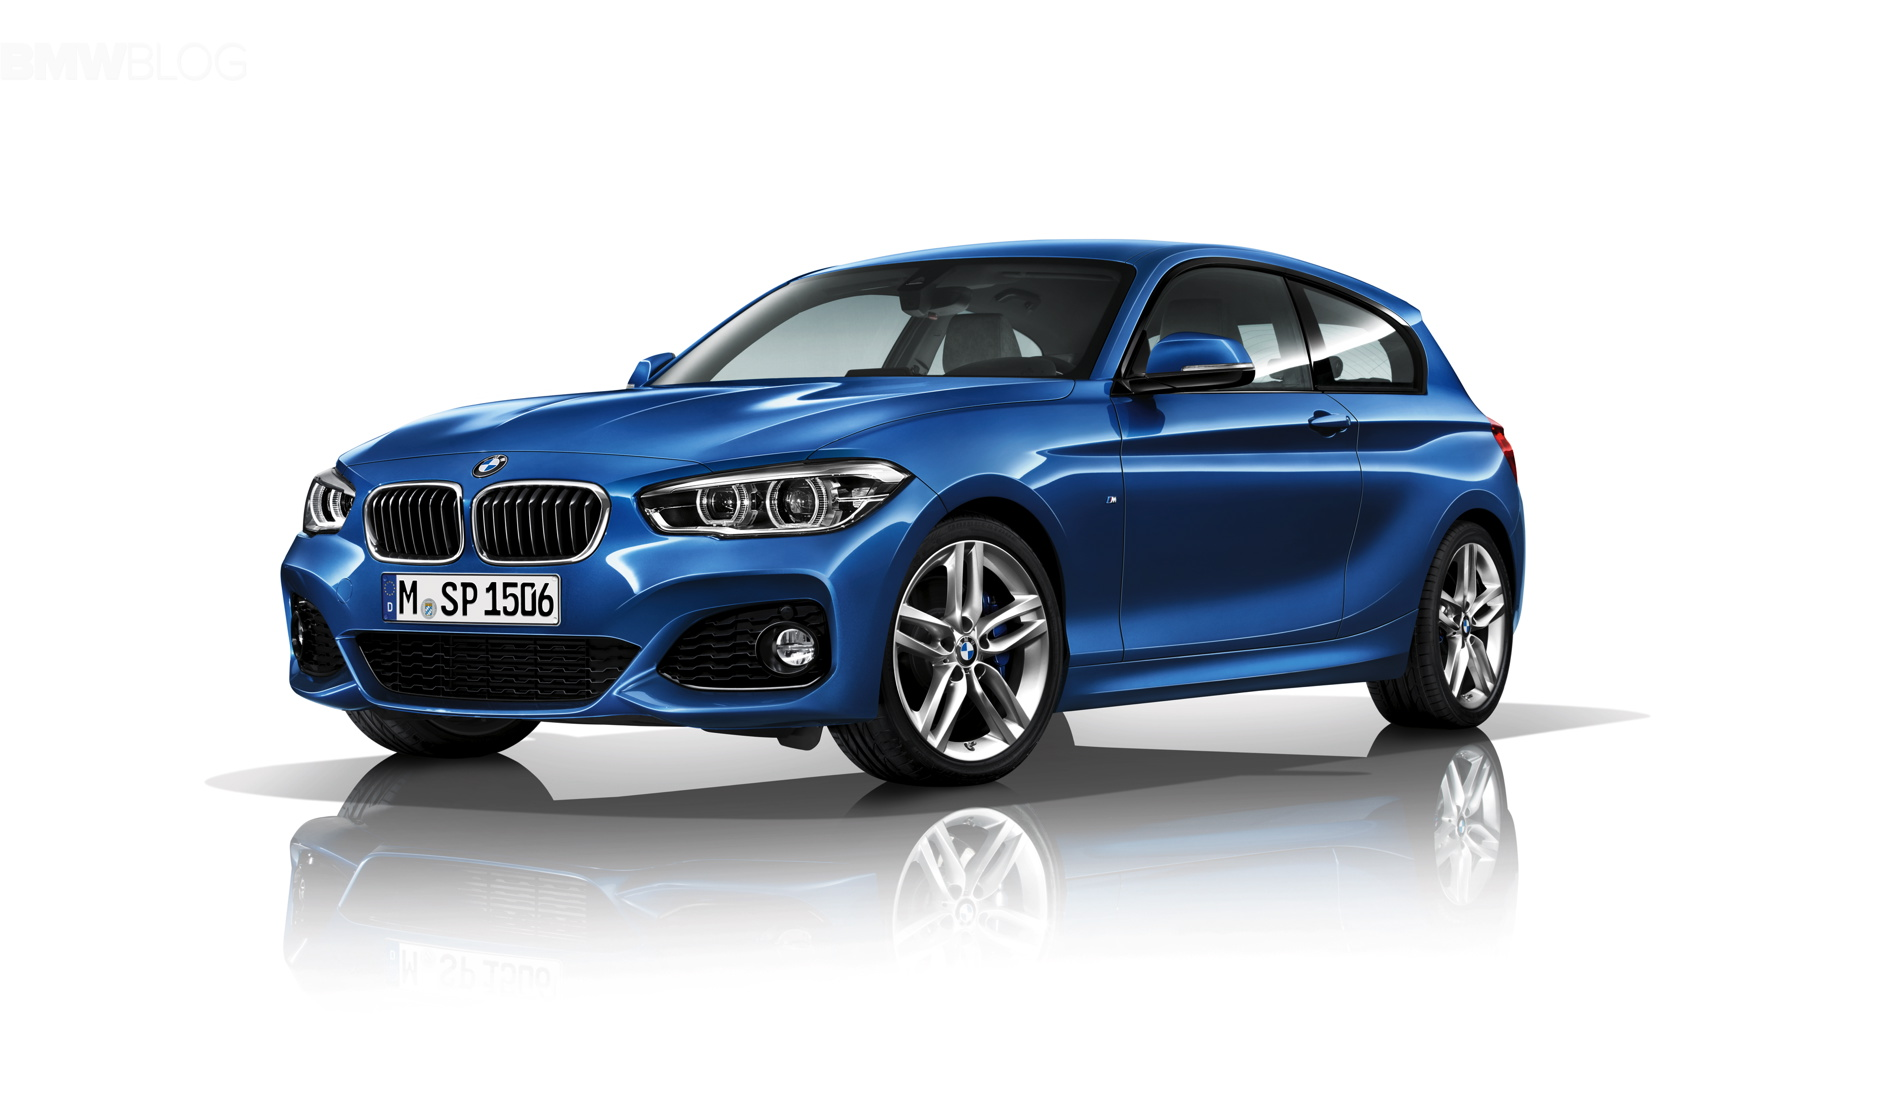 2015 bmw 1 series urban line images 061